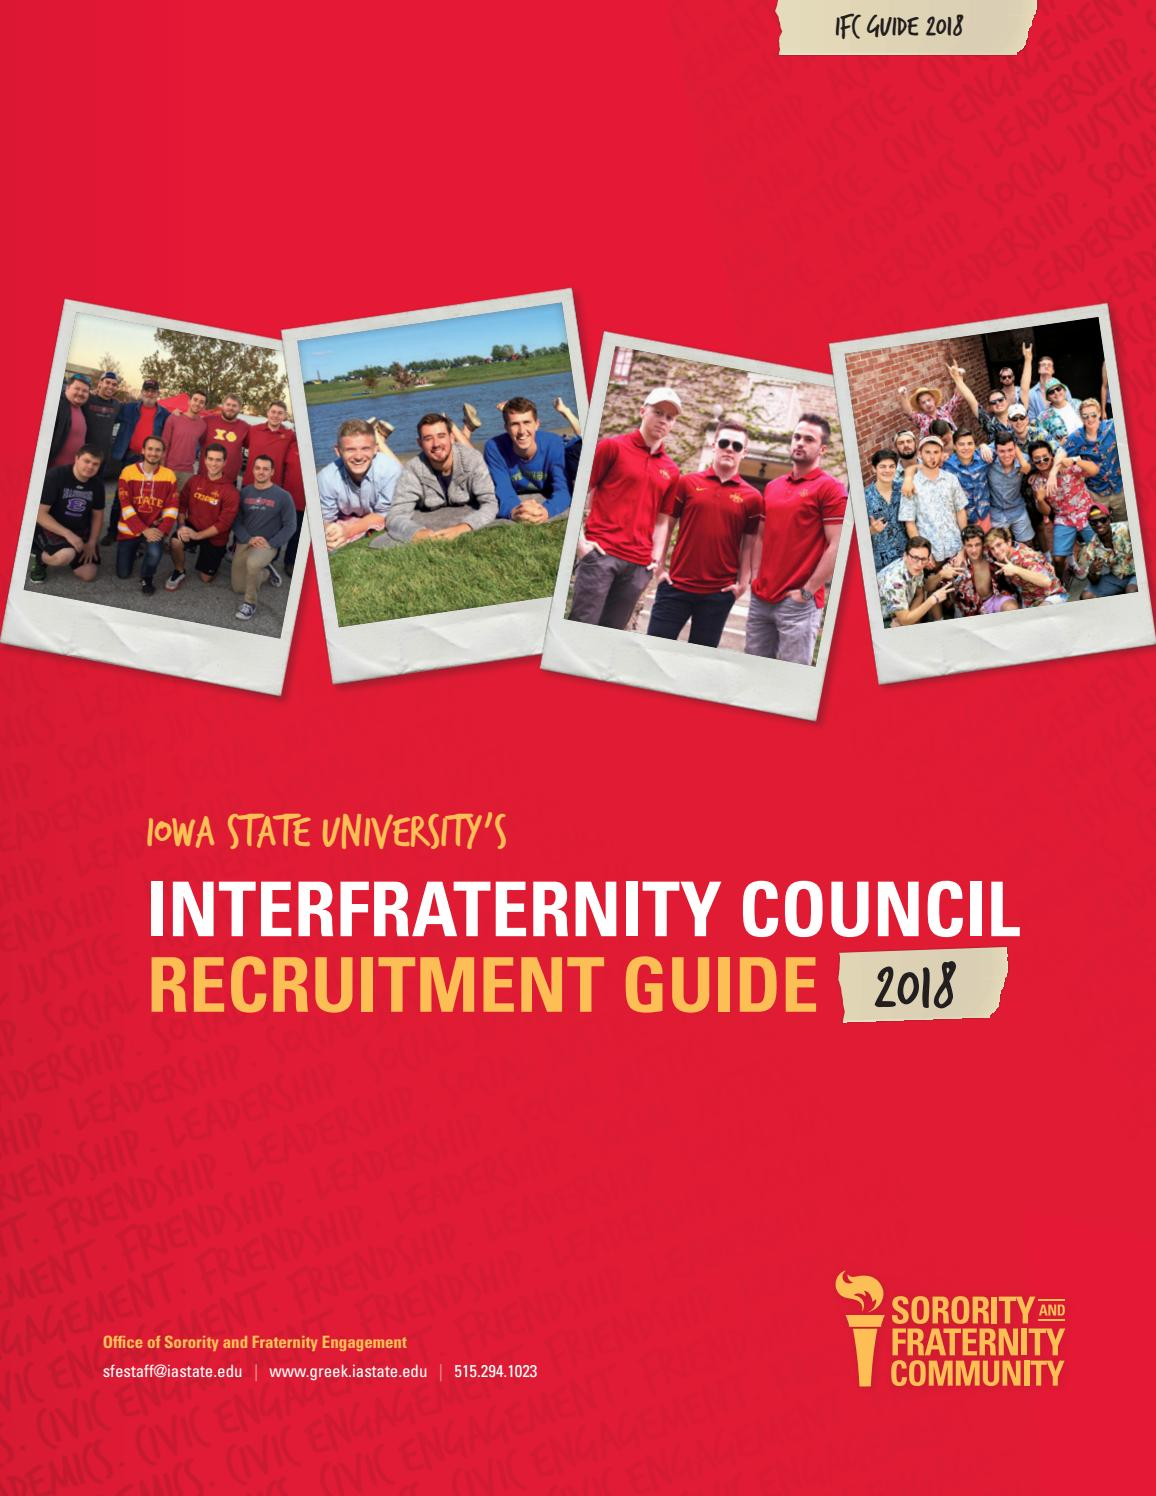 ISU IFC Guide 2018 by Iowa State University Office of Sorority and  Fraternity Engagement - issuu